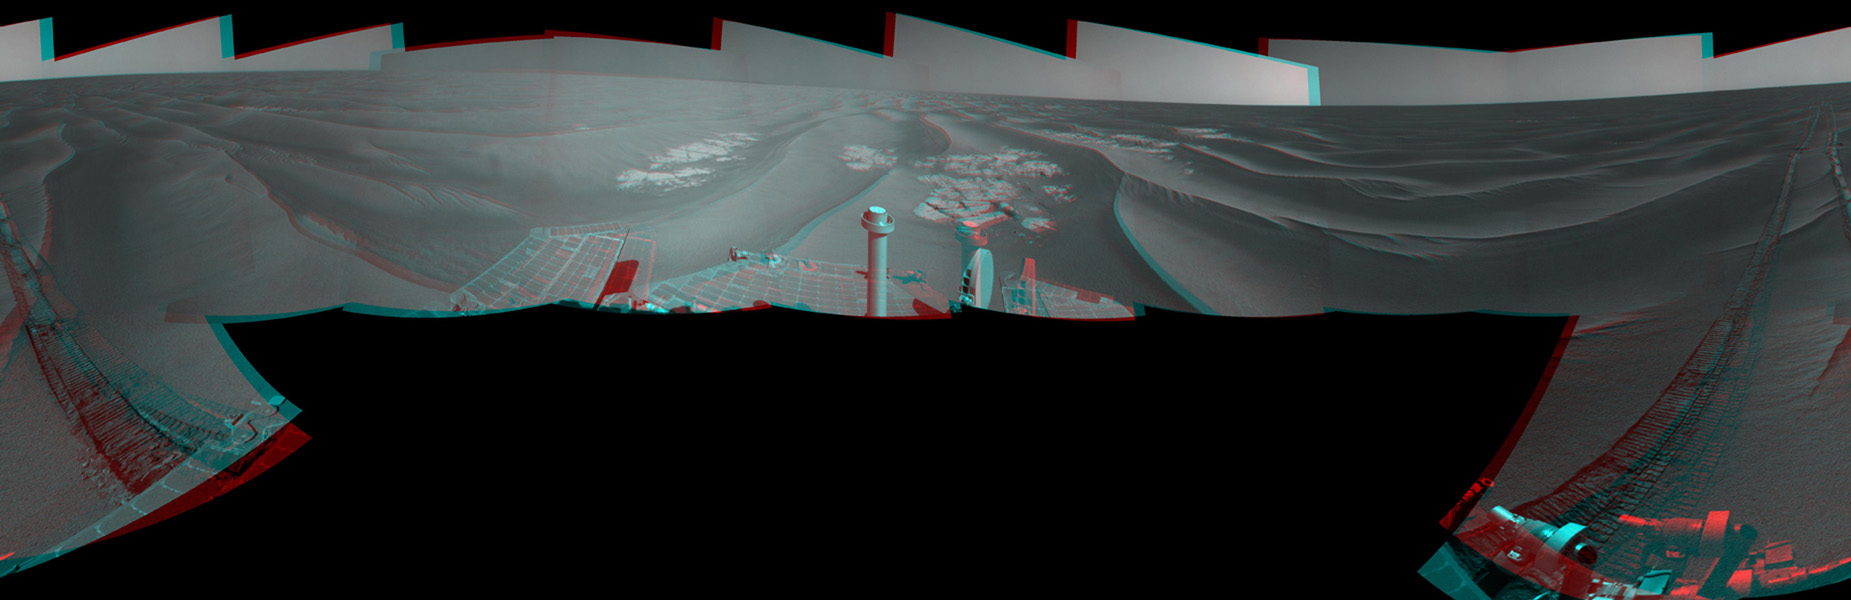 NASA's Mars Exploration Rover Opportunity combined images into this stereo, 360-degree view on April 22, 2010. This site is about 6 kilometers (3.7 miles) south-southwest of Victoria Crater. 3D glasses are necessary to view this image.